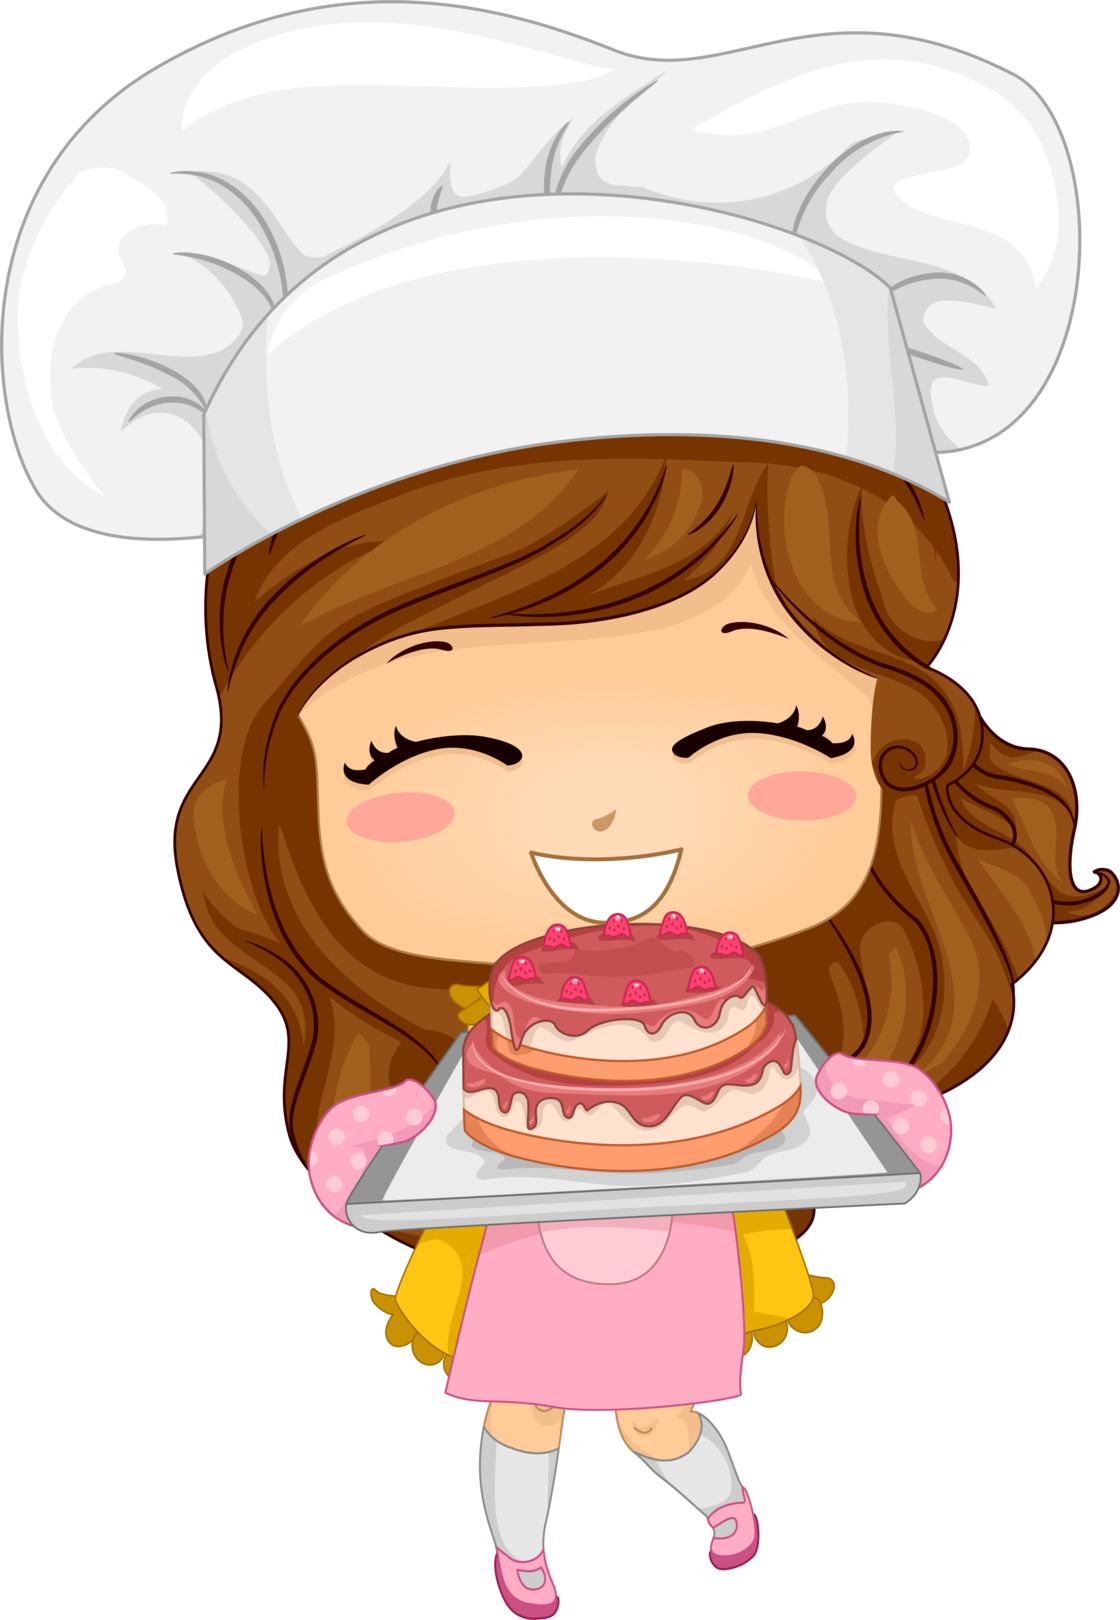 Bake clipart pastry. Pin by derm design